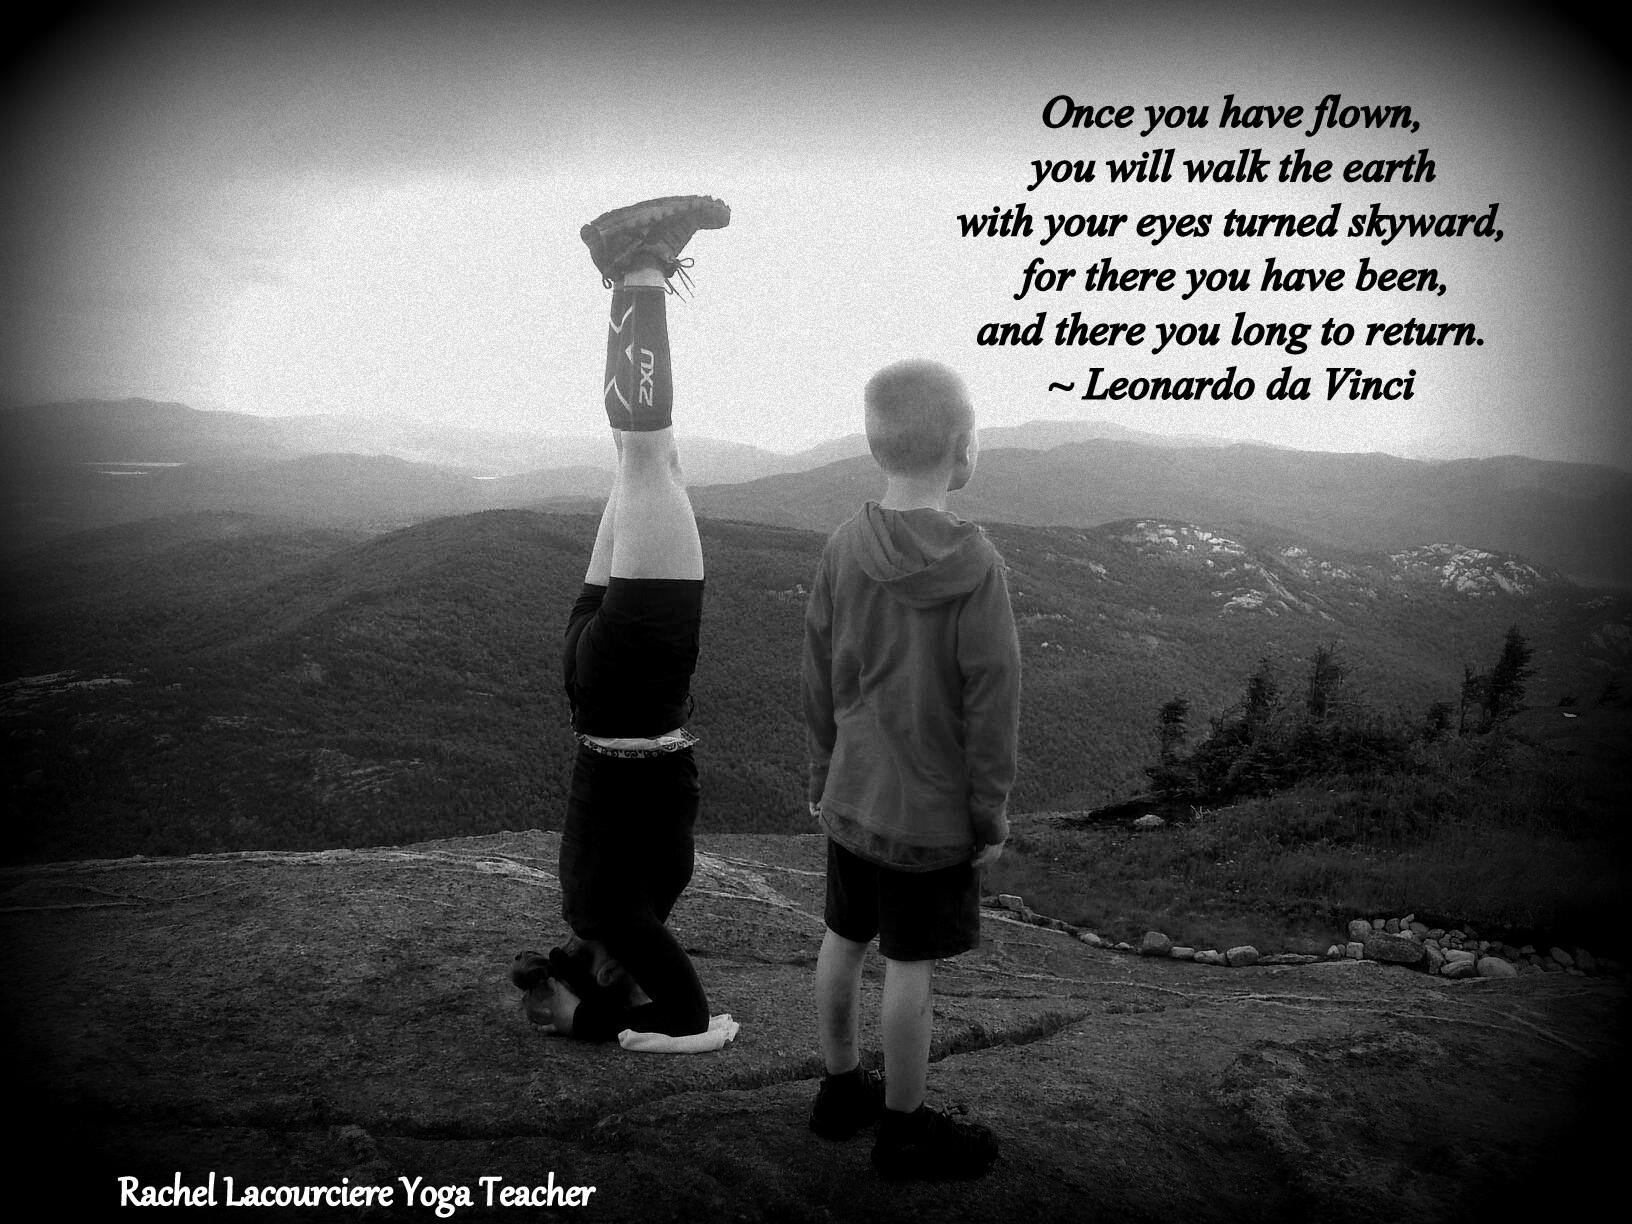 Once you have flown, you will walk the earth with your eyes turned skyward, for there you have been, and there you long to return.  ~ Leonardo da Vinci